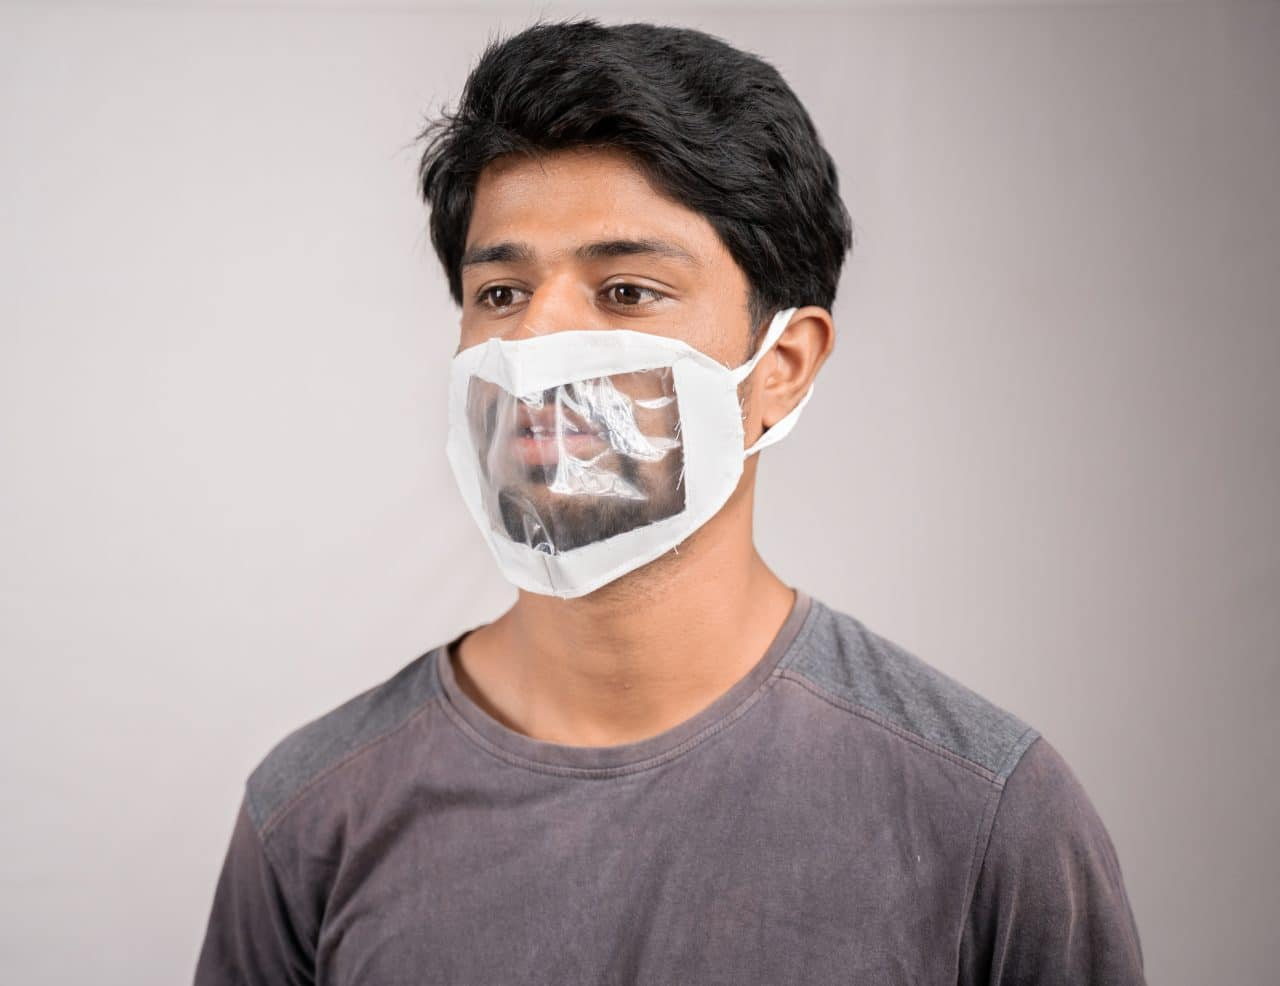 young man with transparent Medical face mask, to help hearing impermeant or deaf people to understand lipreading during coronavirus or covid-19 outbreak